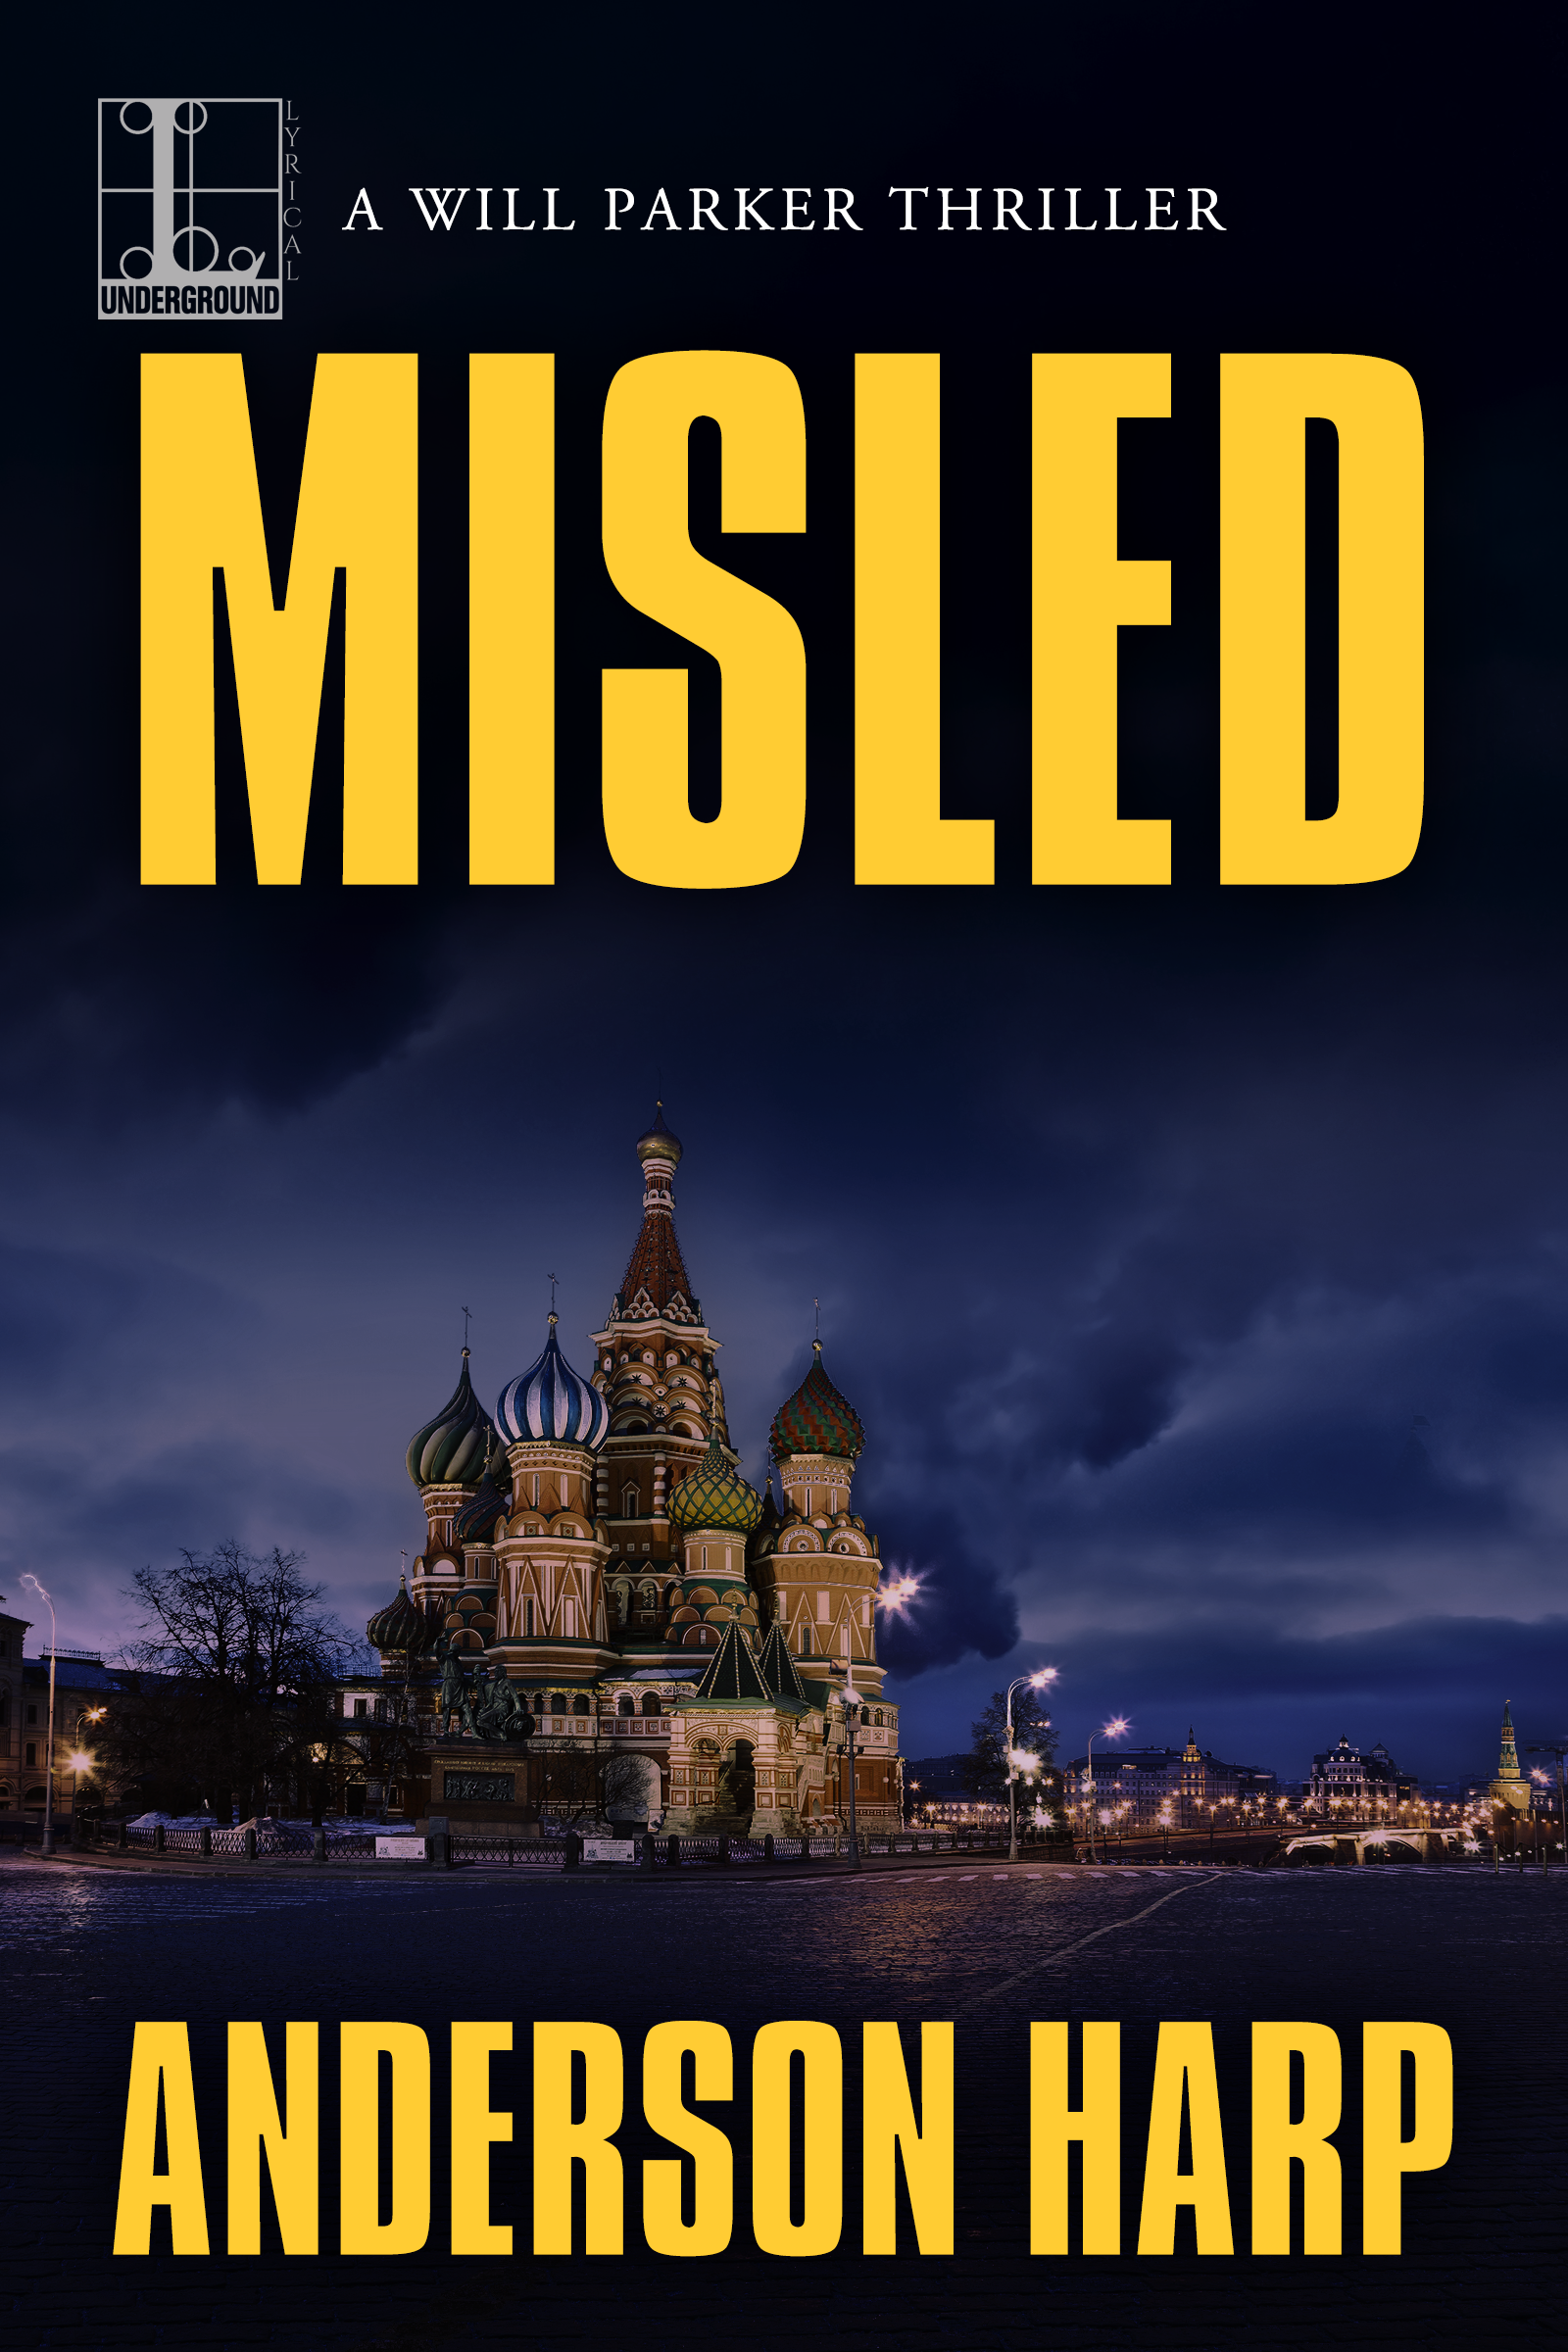 Misled, A Will Parker Thriller by Anderson Harp